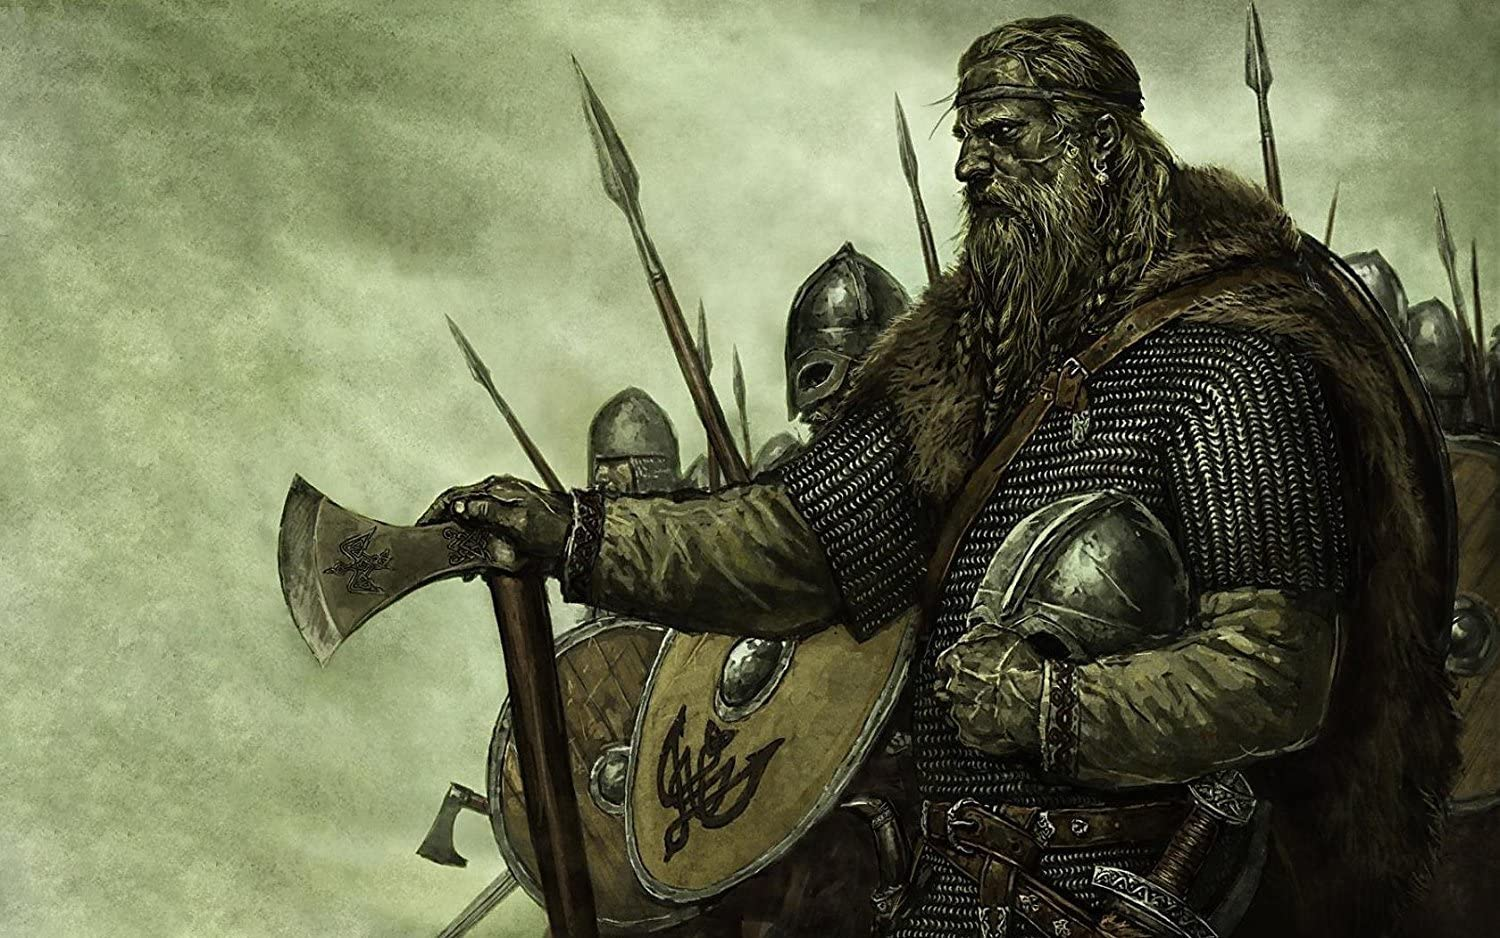 Amazon Com Real Hand Painted Viking Warriors Canvas Oil Painting For Home Wall Art Decoration Not A Print Giclee Poster Framed Ready To Hang Posters Prints